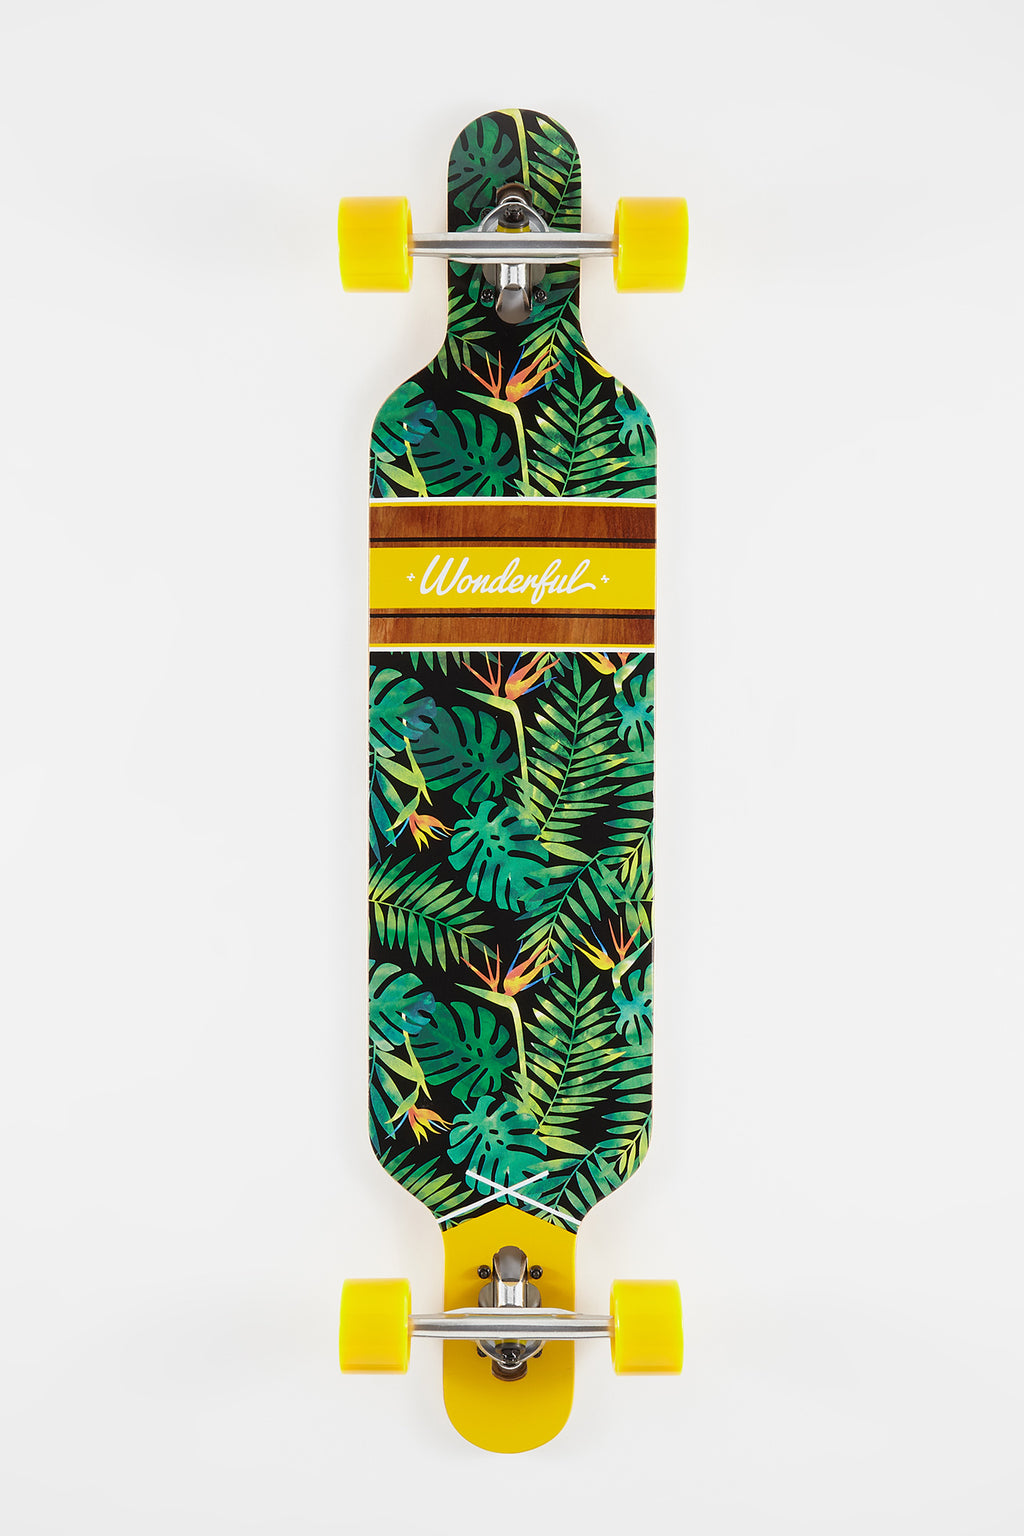 Wonderful Tropical Longboard - 42""